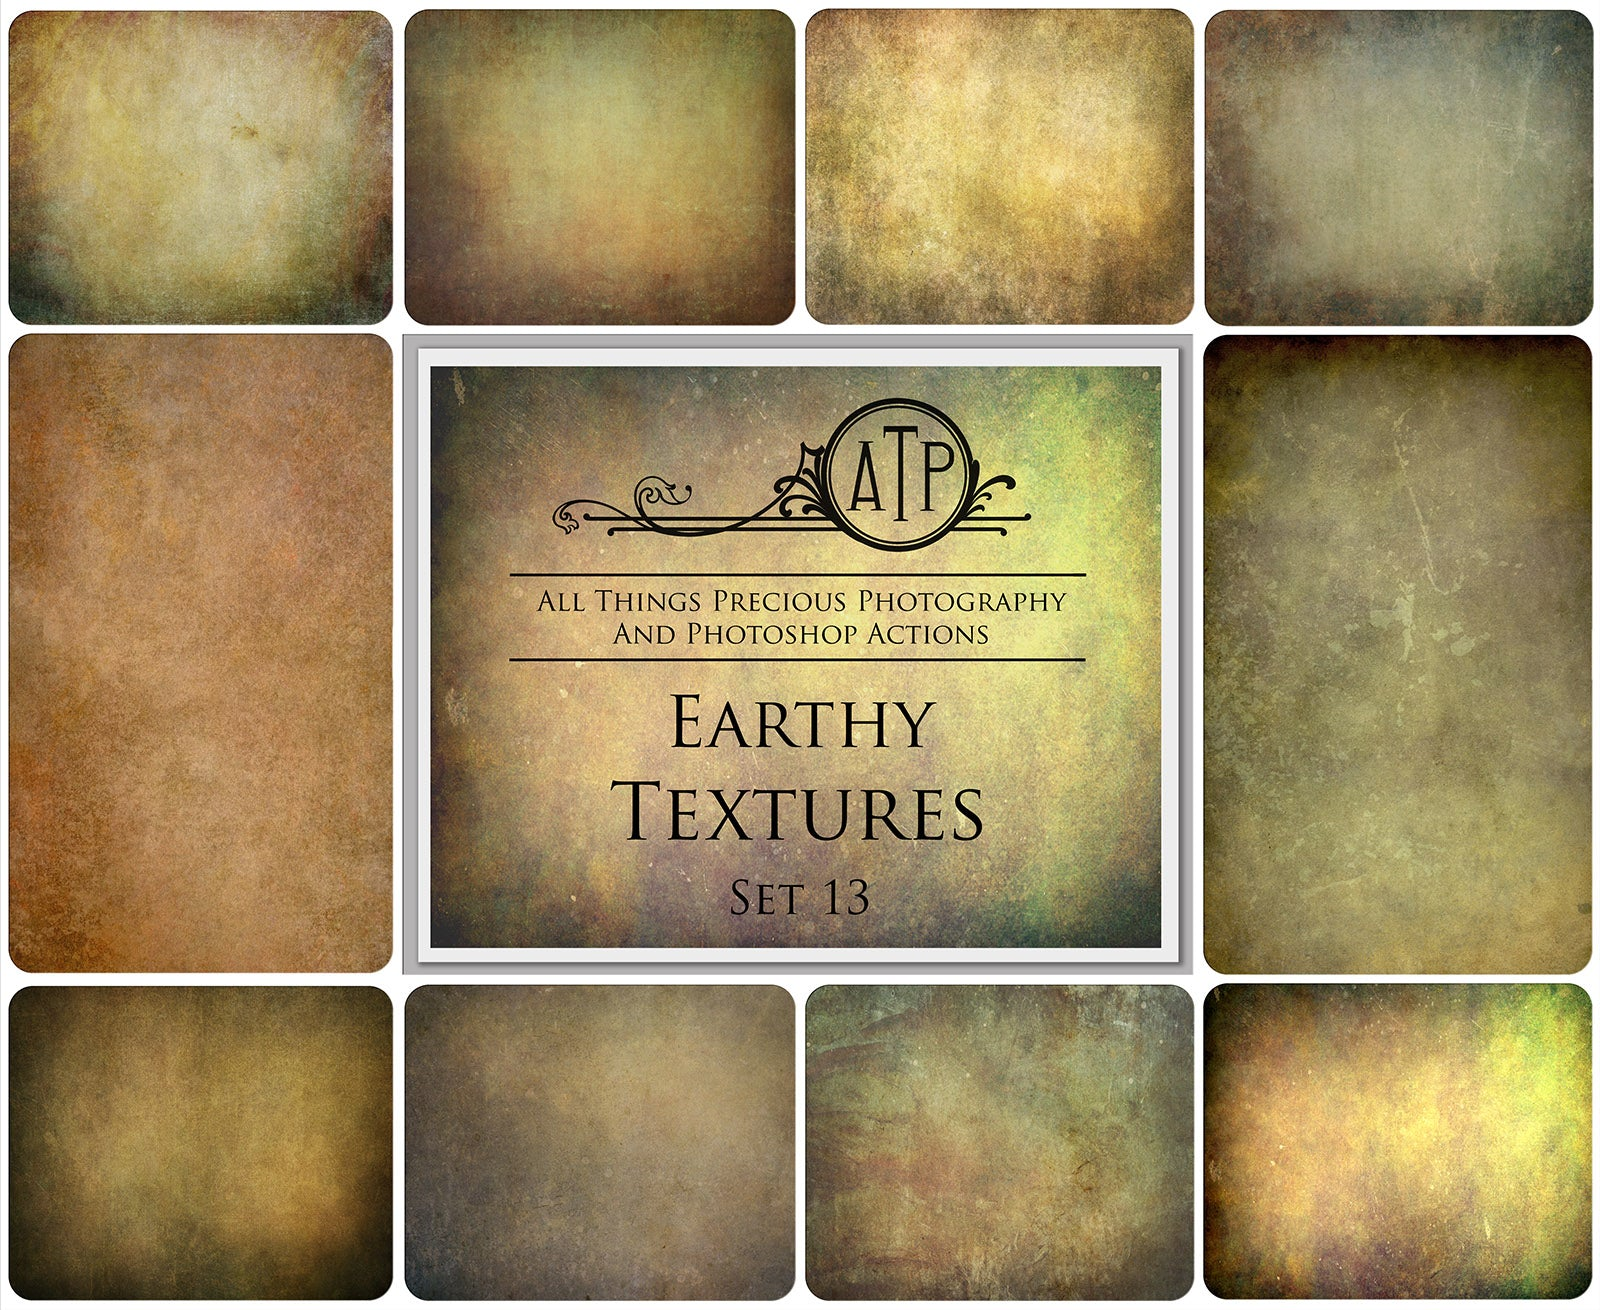 10 Fine Art TEXTURES - EARTHY Set 13